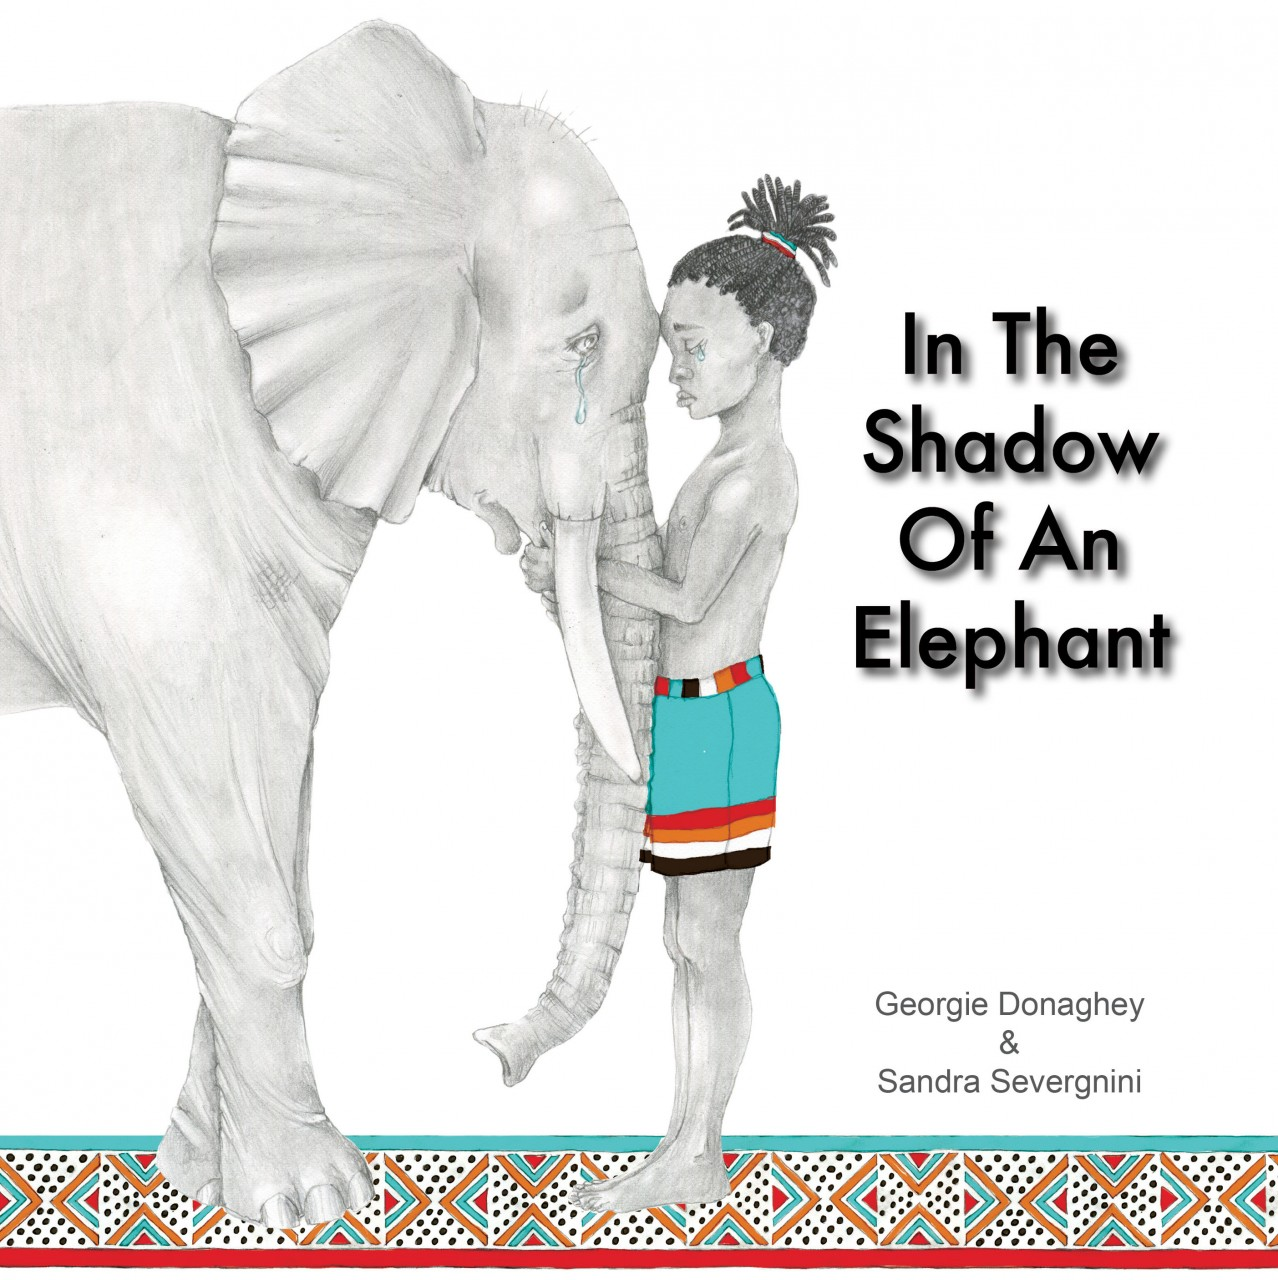 The Story Behind the Story - In the Shadow of an Elephant by Georgie Donaghey